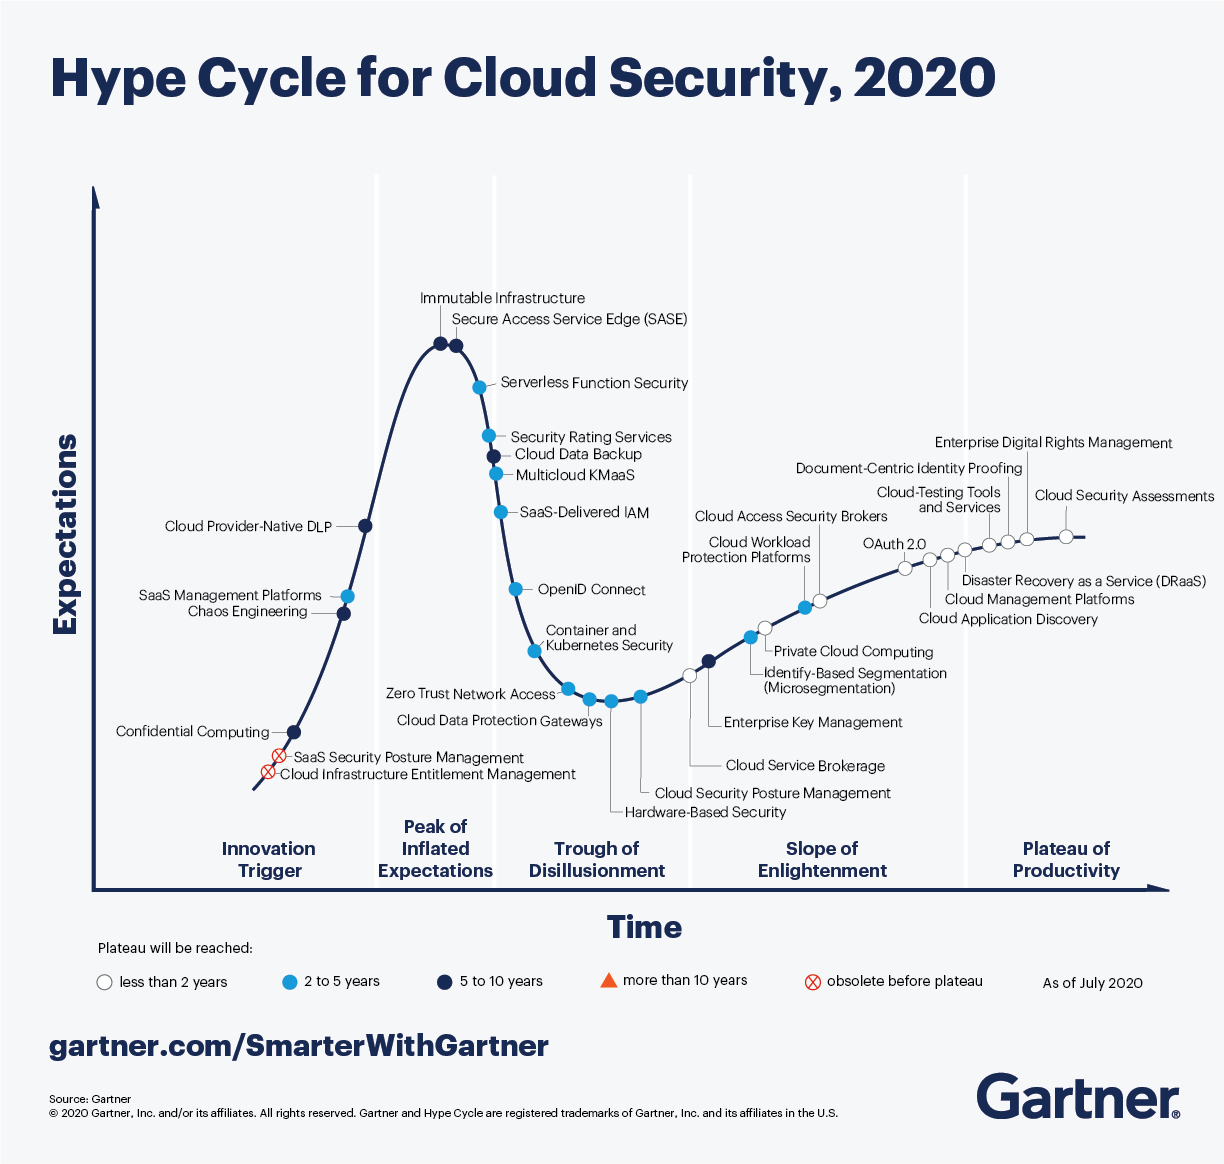 Gartner Hype Cycle for Cloud Security, 2020 show s three technologies to take action now.